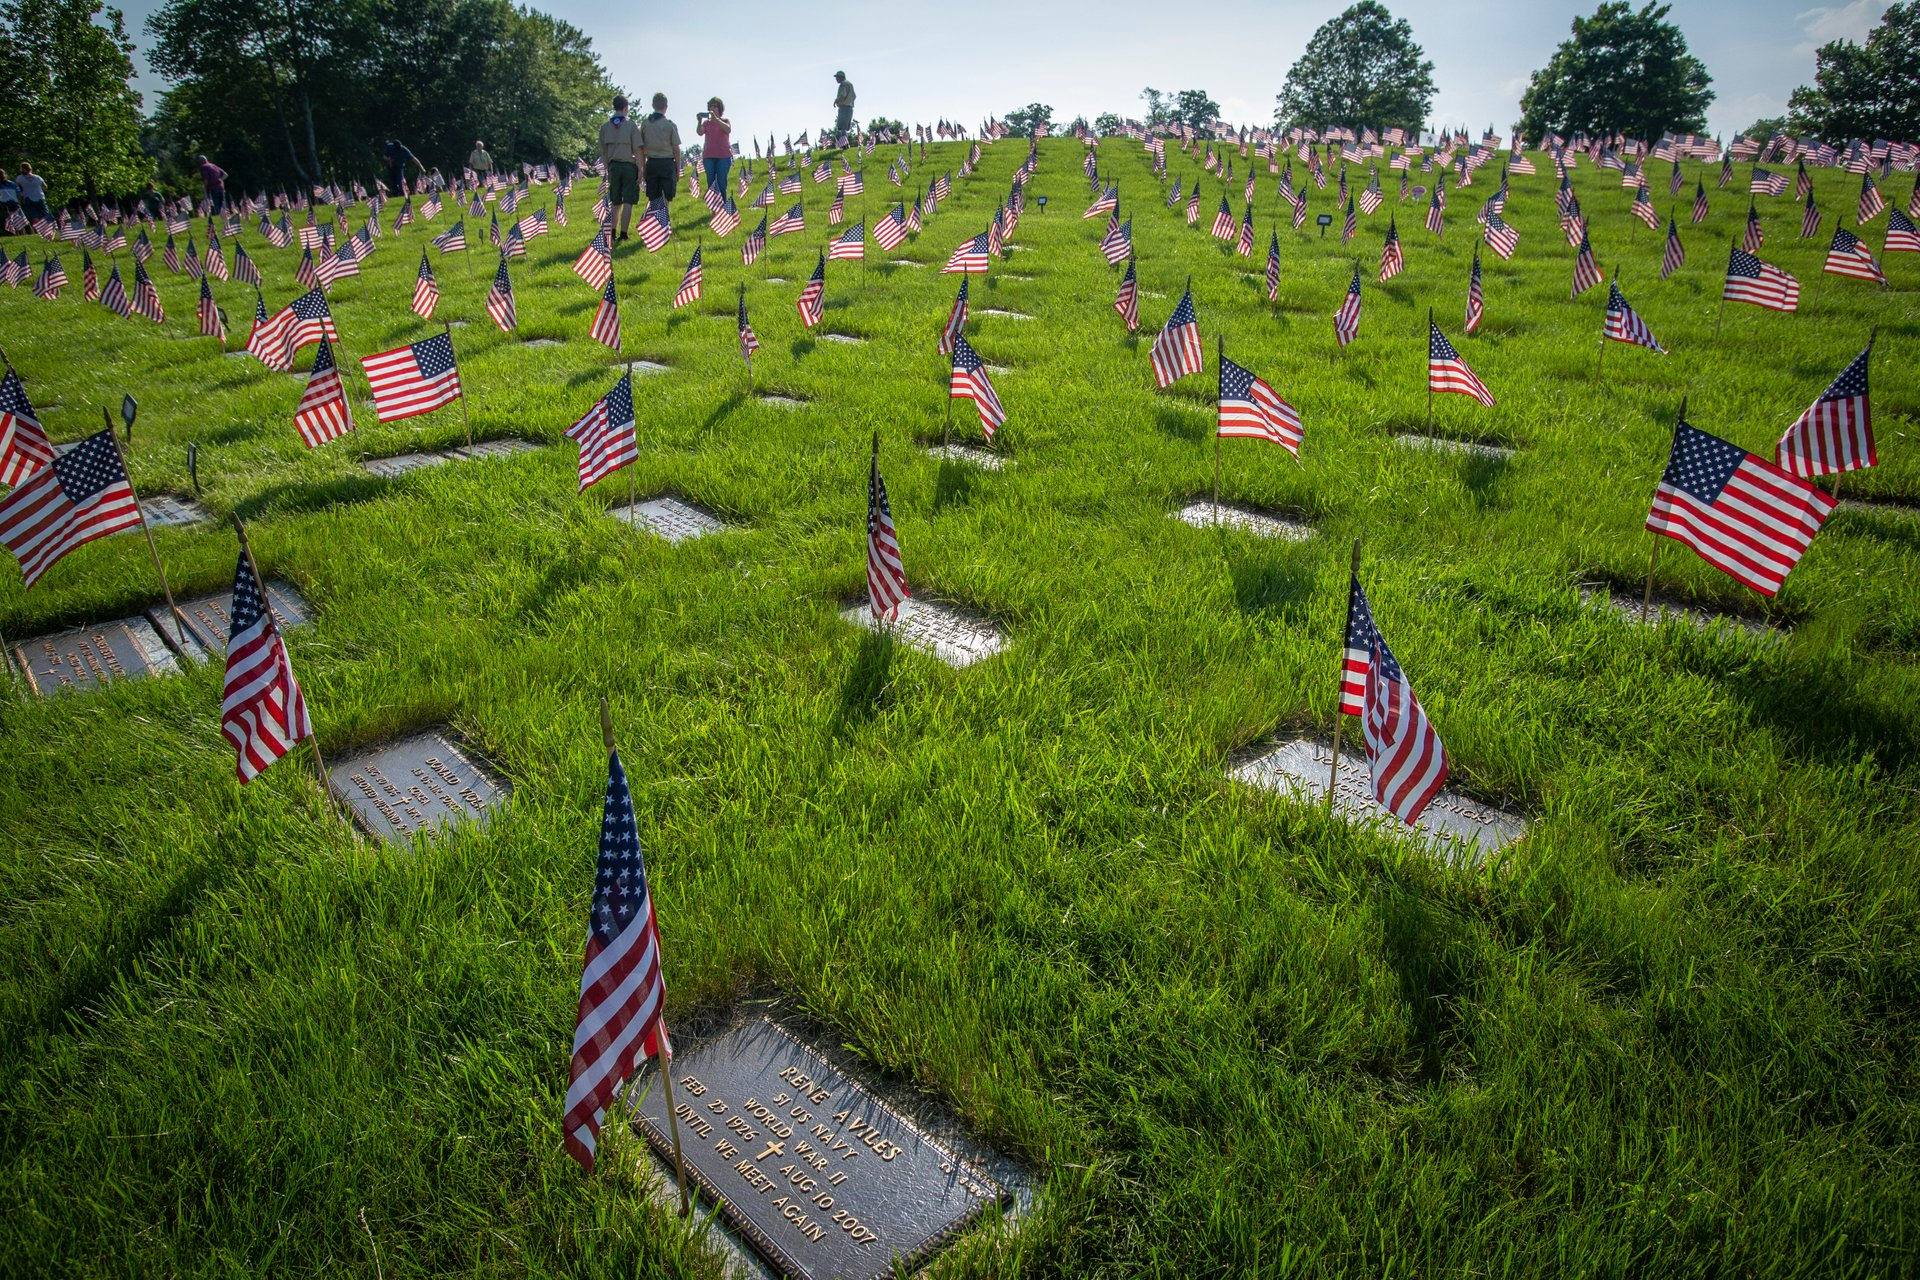 Nearly 60,000 American flags were placed on the graves by more than 1,900 New Jersey Boy Scouts, Girl Scouts, Cub Scouts, and Brownies at the Brigadier General William C. Doyle Memorial Cemetery at North Hanover Township, N.J., May 25, 2018. The flag placement ceremony takes place the day before the state Memorial Day ceremony at the Cemetery.  2020